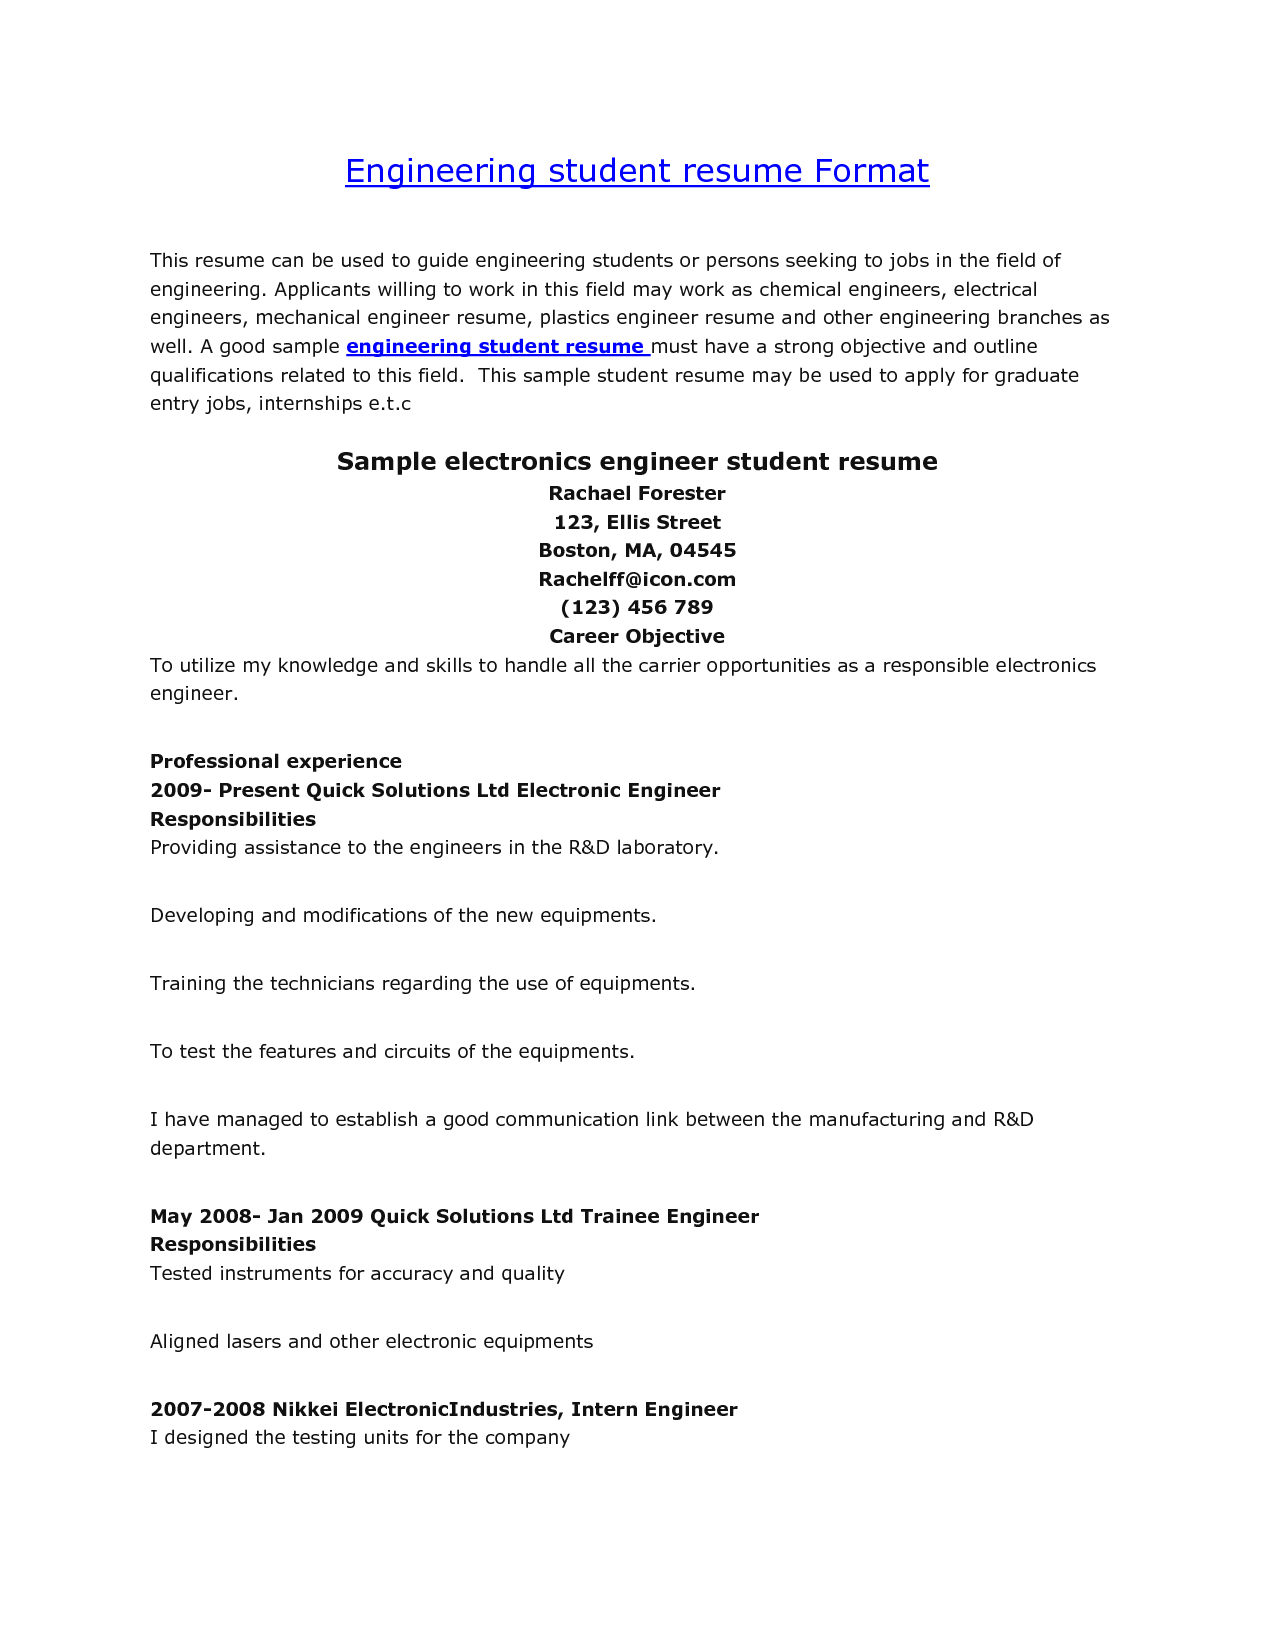 resume Resume Format In Engineering Student resume format for engineering students httpwww jobresume website